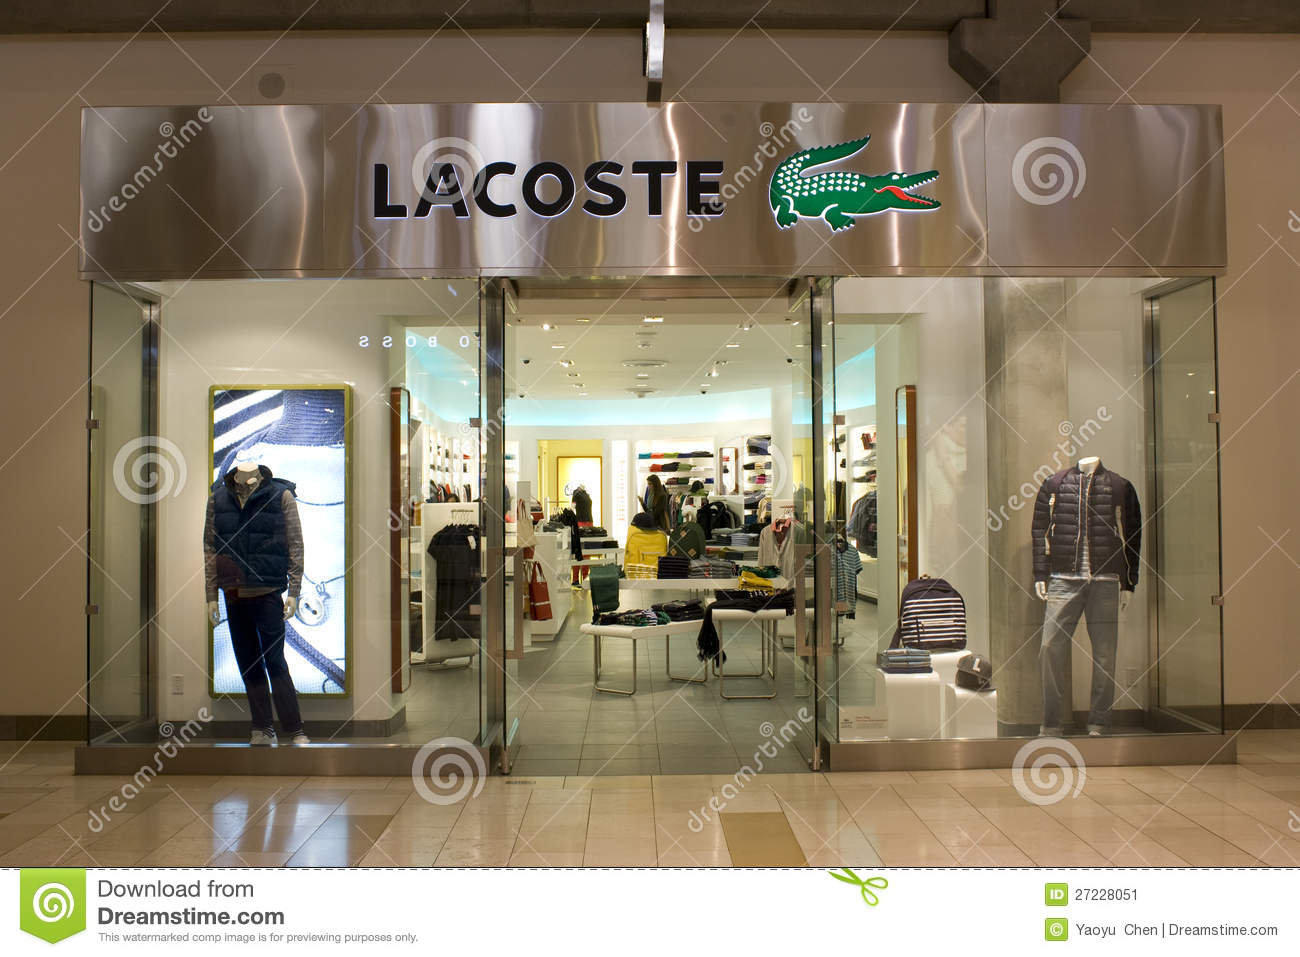 3c2b4b9bcce85 Lacoste Store Stock Images - Download 154 Royalty Free Photos